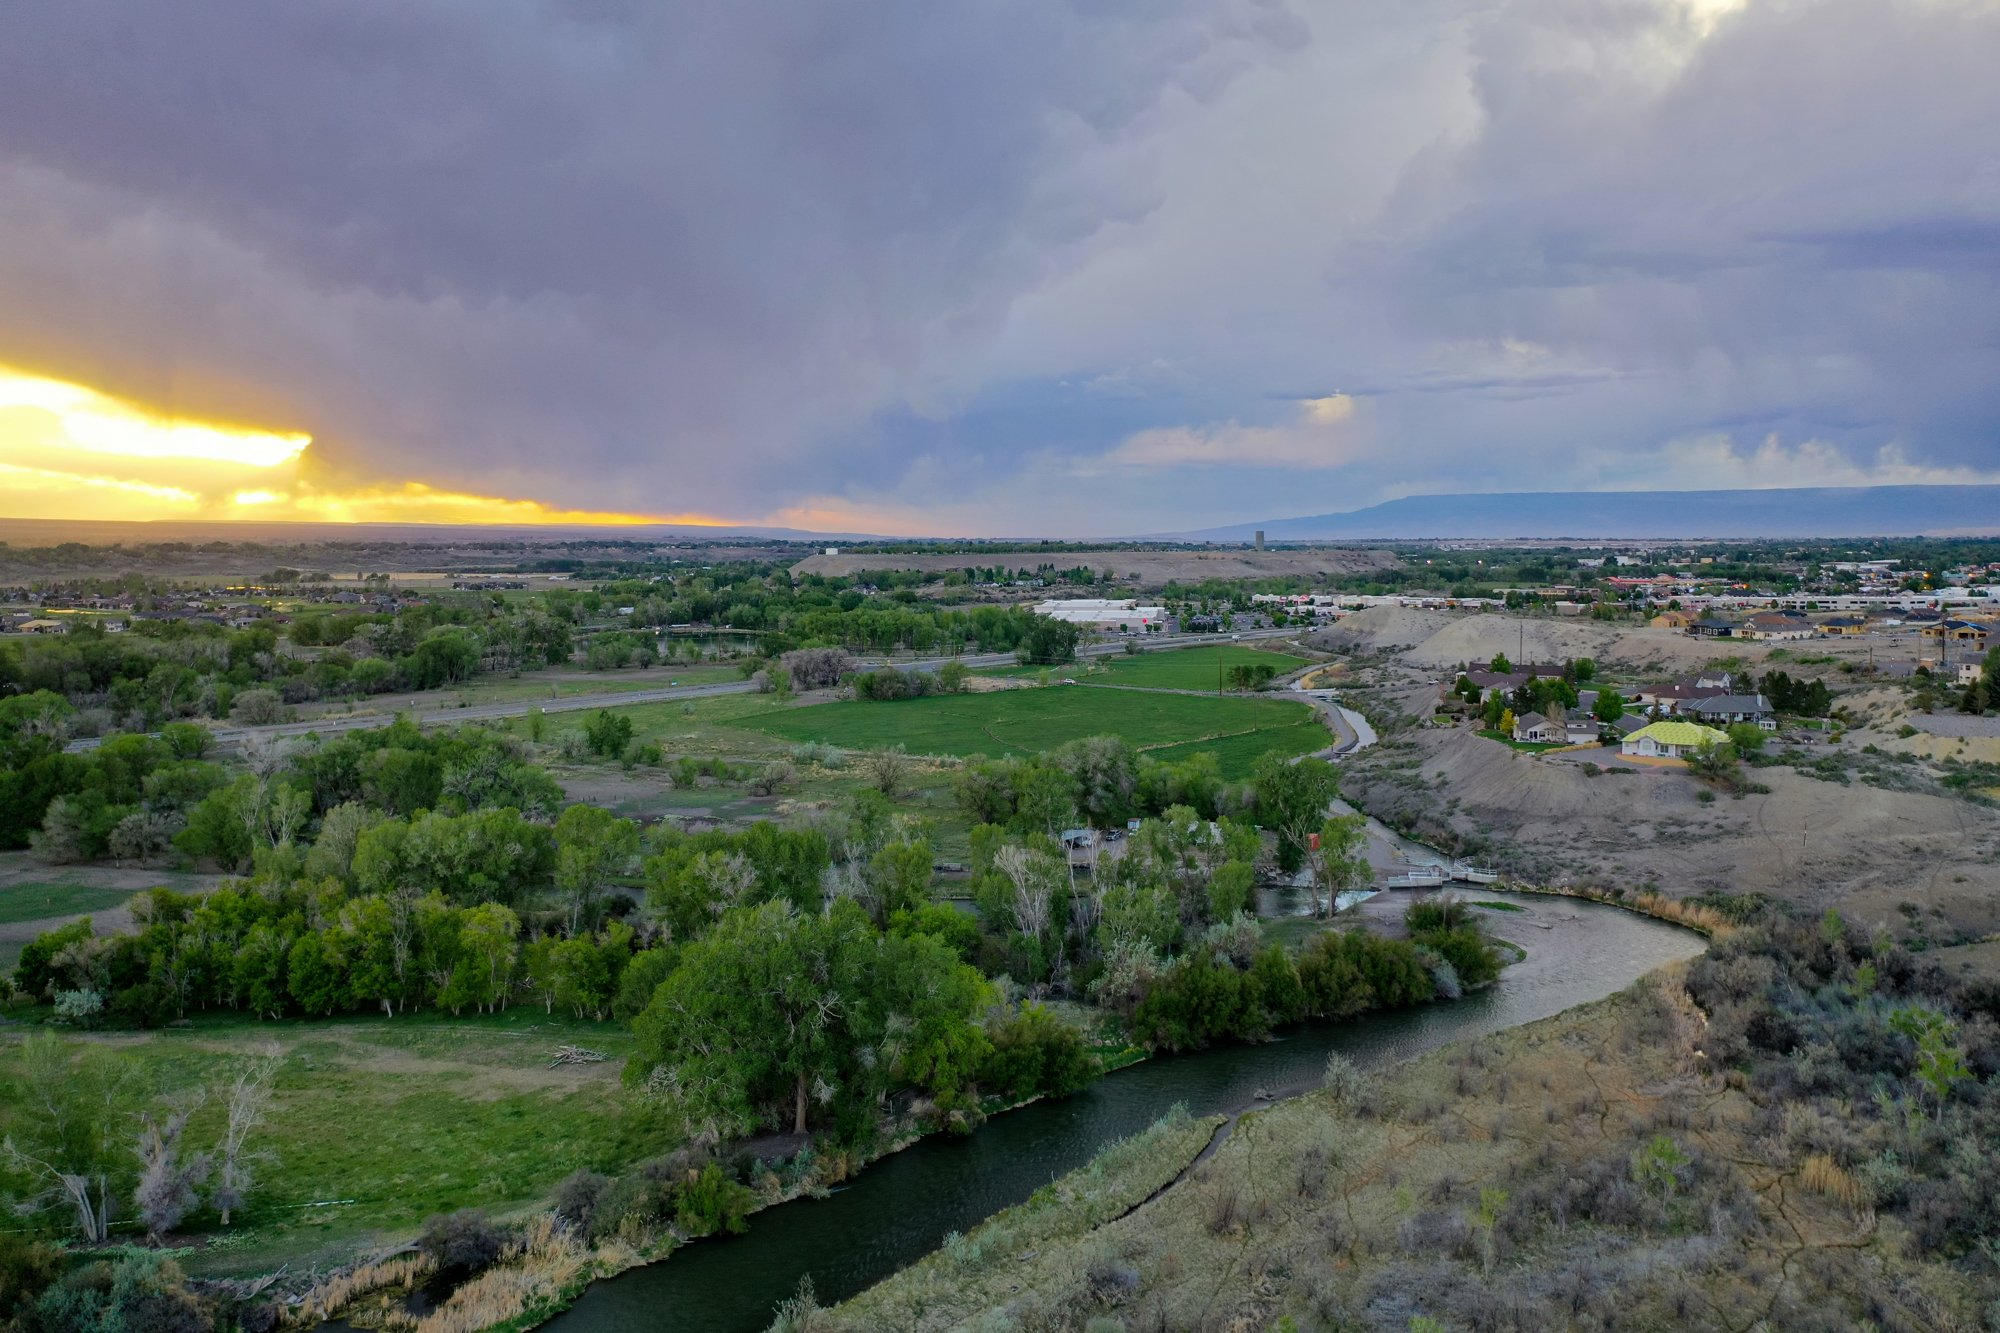 Sunset Views over the River - 16955 Wildwood Dr. Montrose, CO 81403 - Atha Team Luxury Real Estate